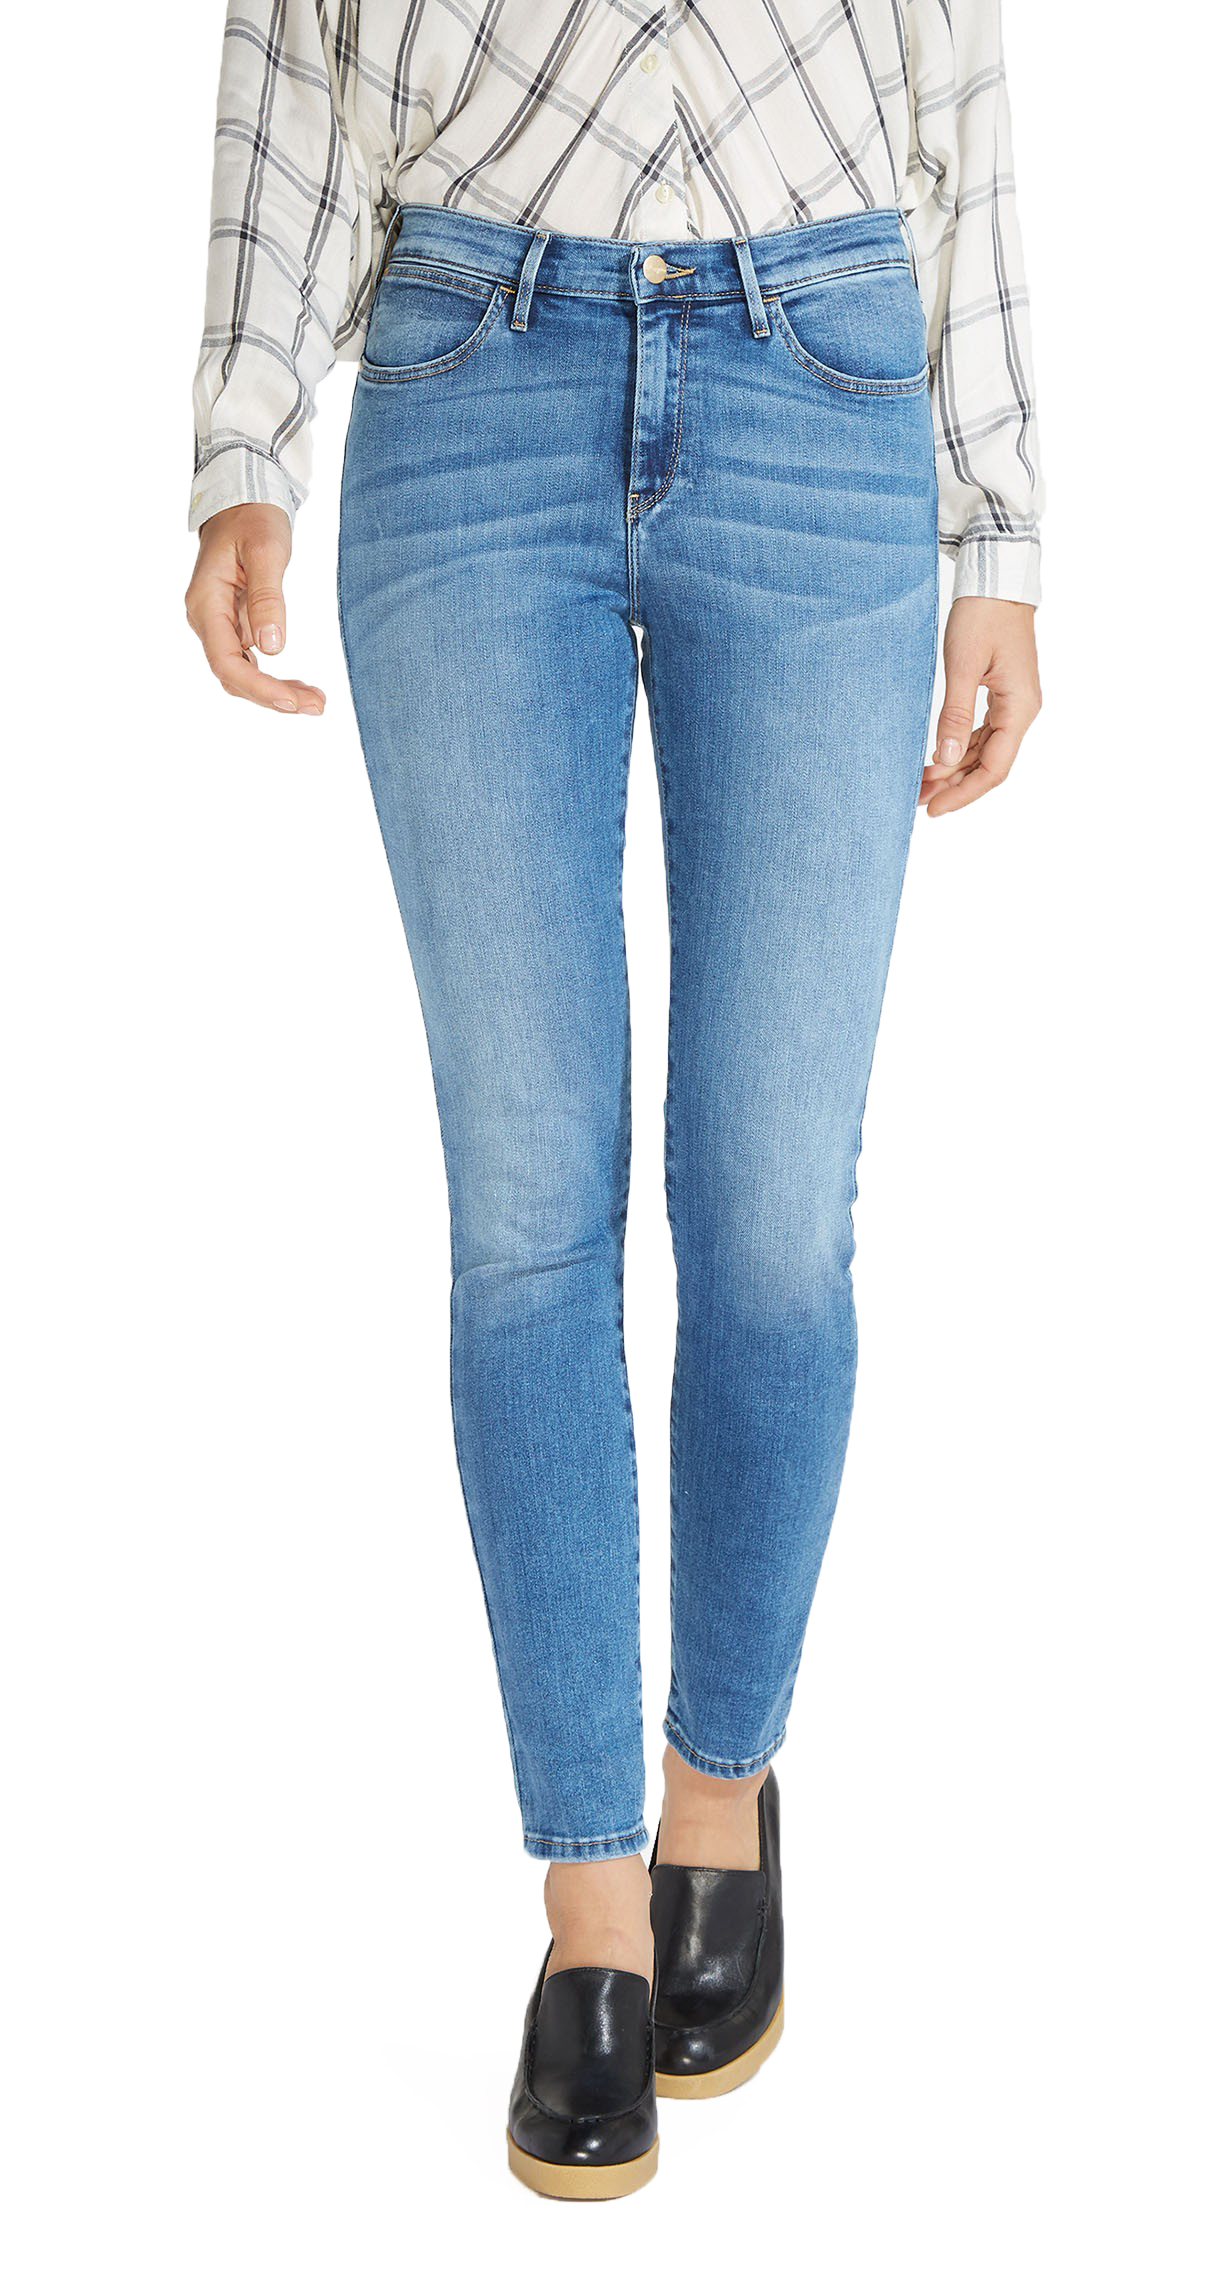 huge inventory suitable for men/women 100% genuine Details about Wrangler High Rise Skinny Flex Stretch Jeans Womens Ladies  Light Best Blue Denim